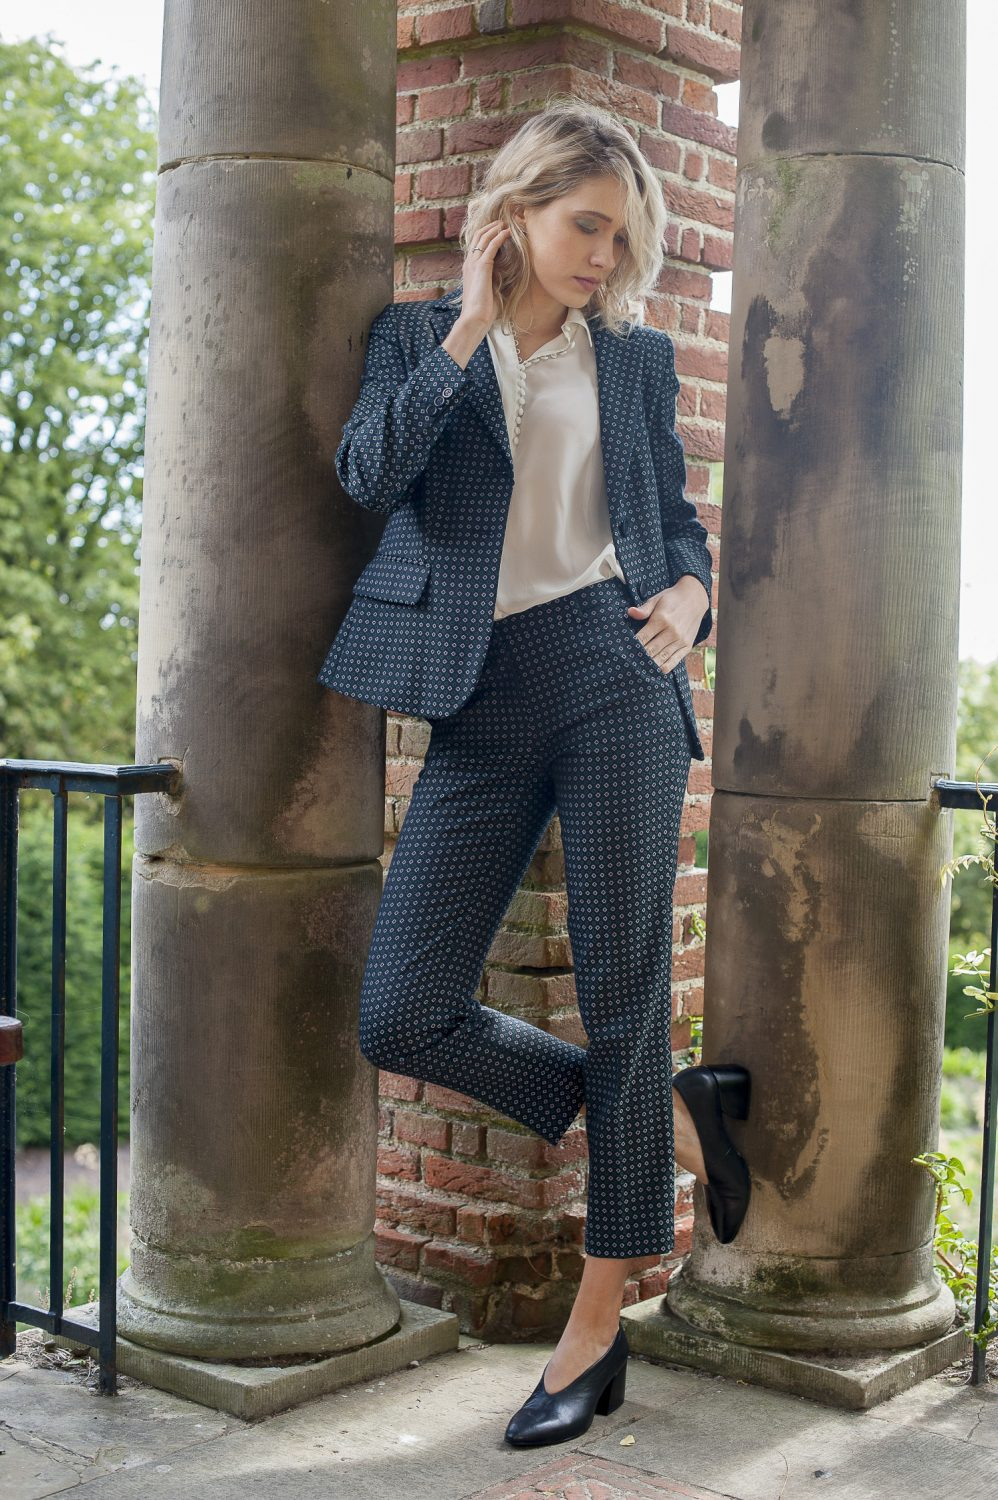 Weekend Maxmara Rosalba jacket, £269, matching Mincio trousers, £165, Dafne blouse, £109, Fenwick, Tunbridge Wells fenwick.co.uk; black heels, £85, Vagabond vagabond.com